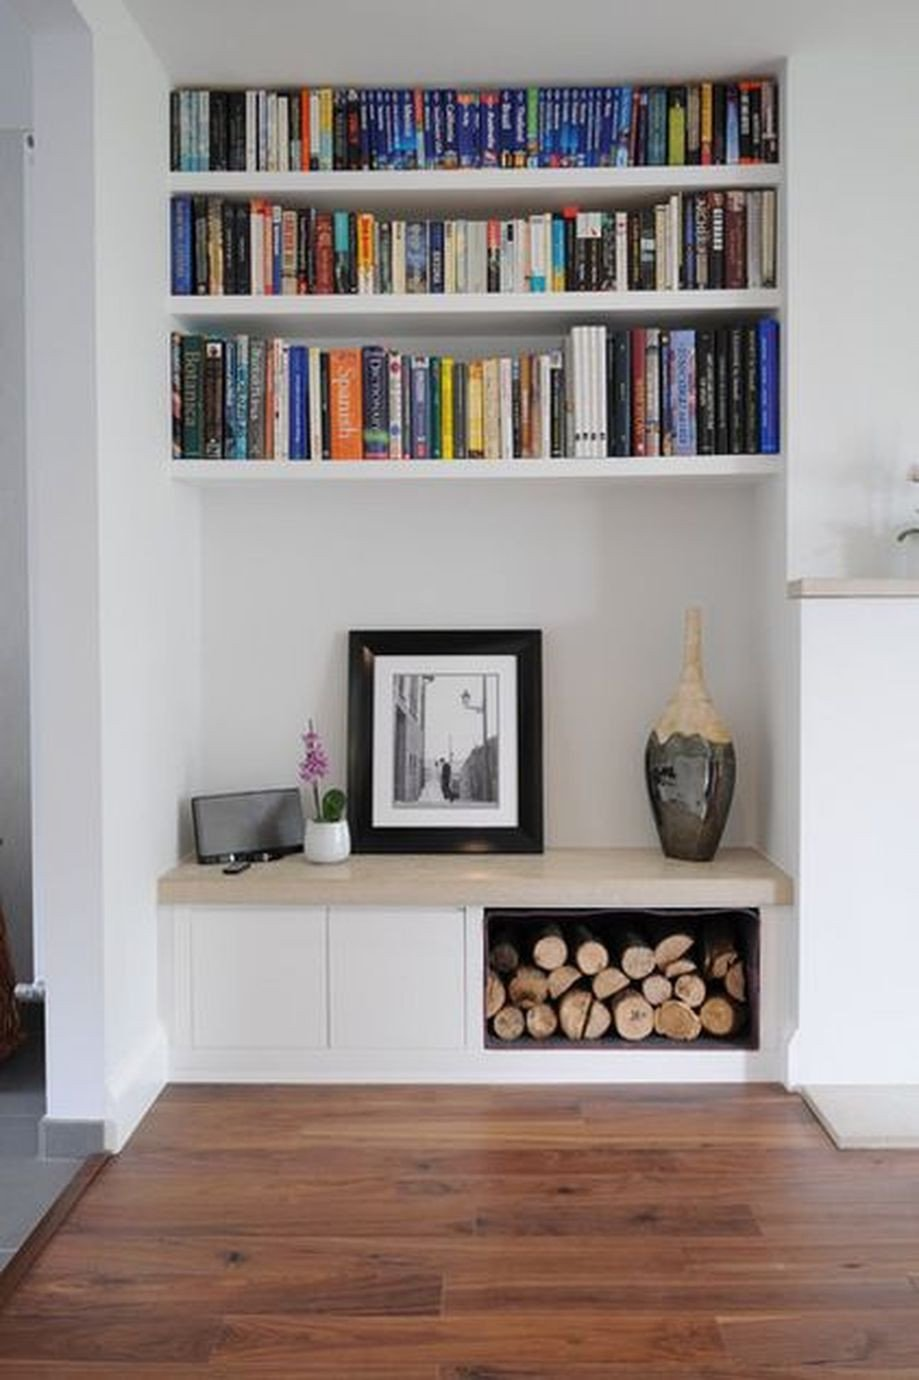 Living Room Ideas Shelves Brilliant Built In Shelves Ideas for Living Room 25